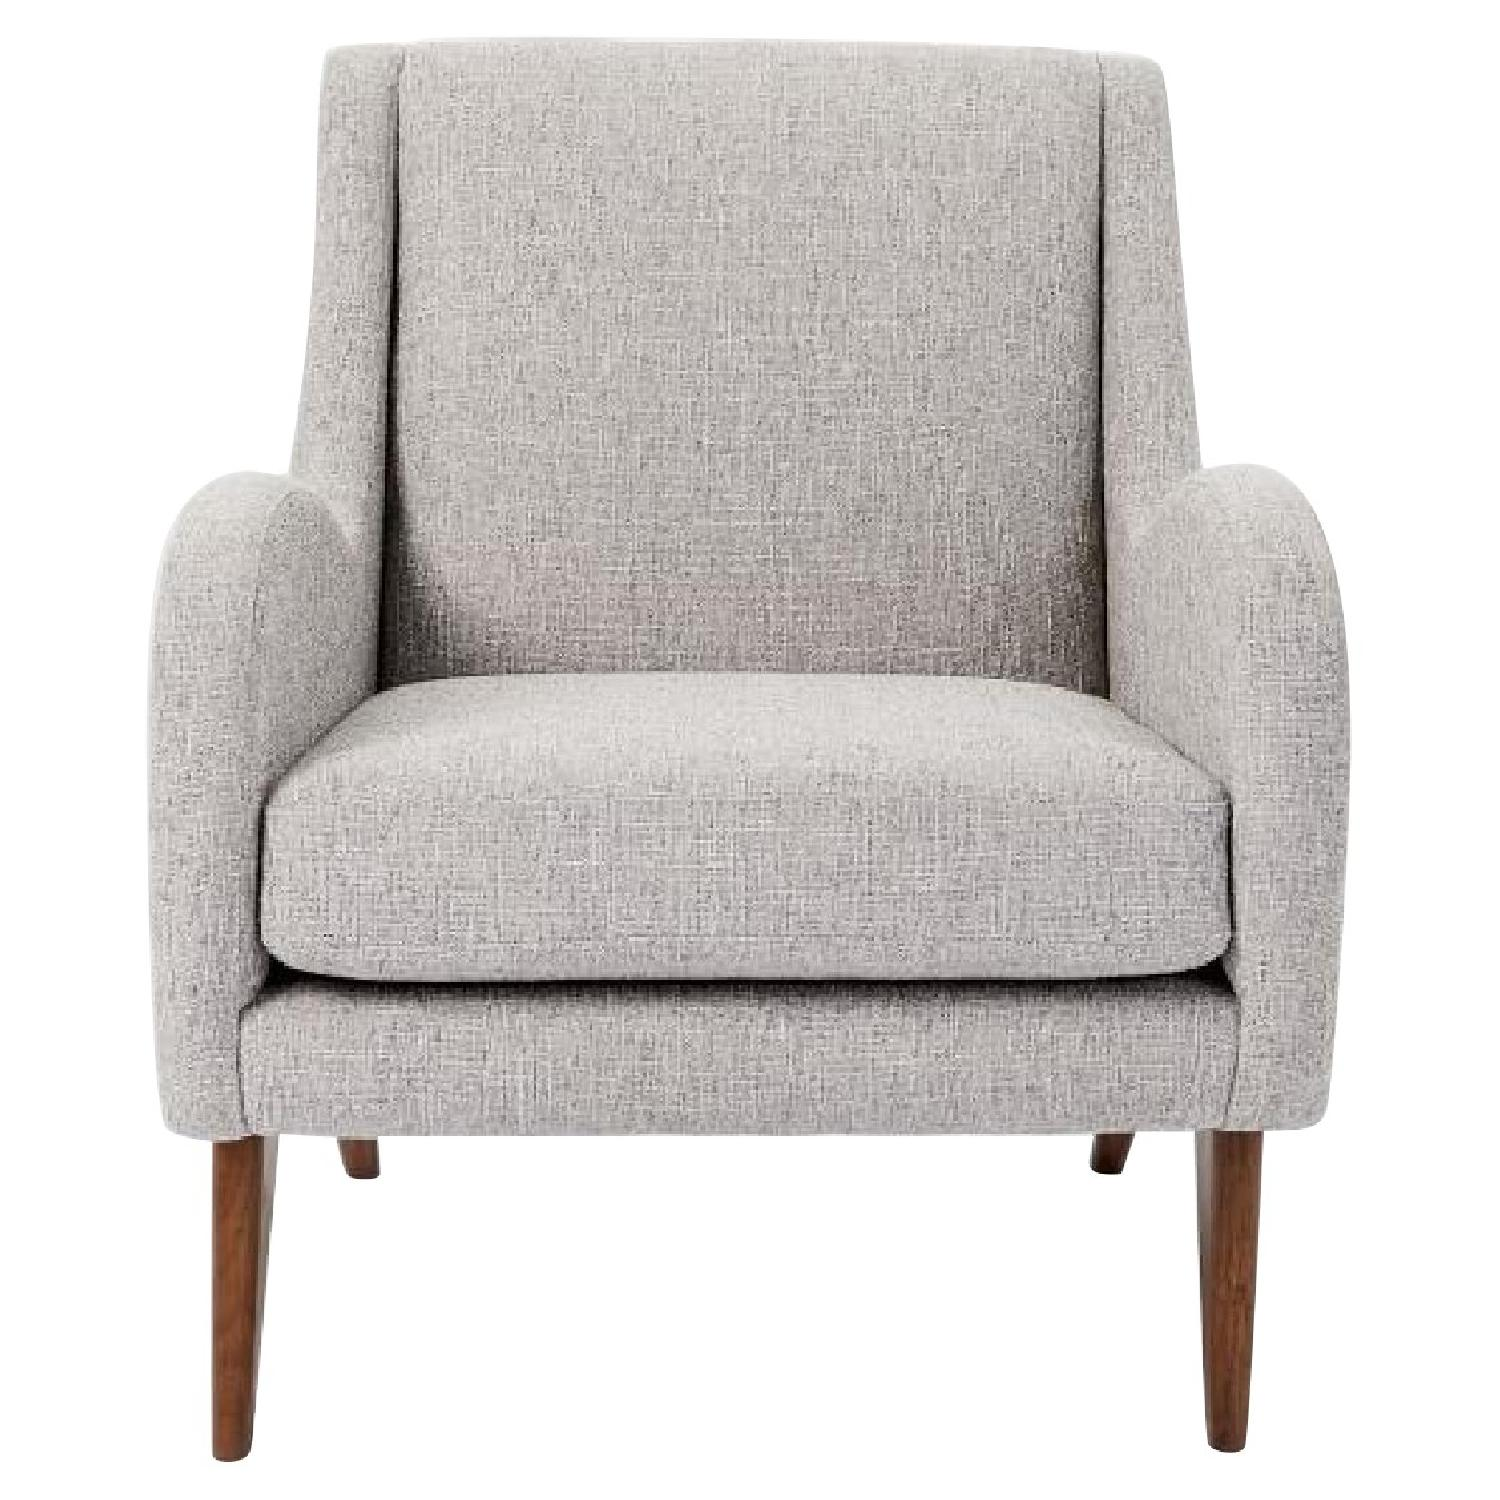 West Elm Sebastian Chair in Feather Gray - image-0